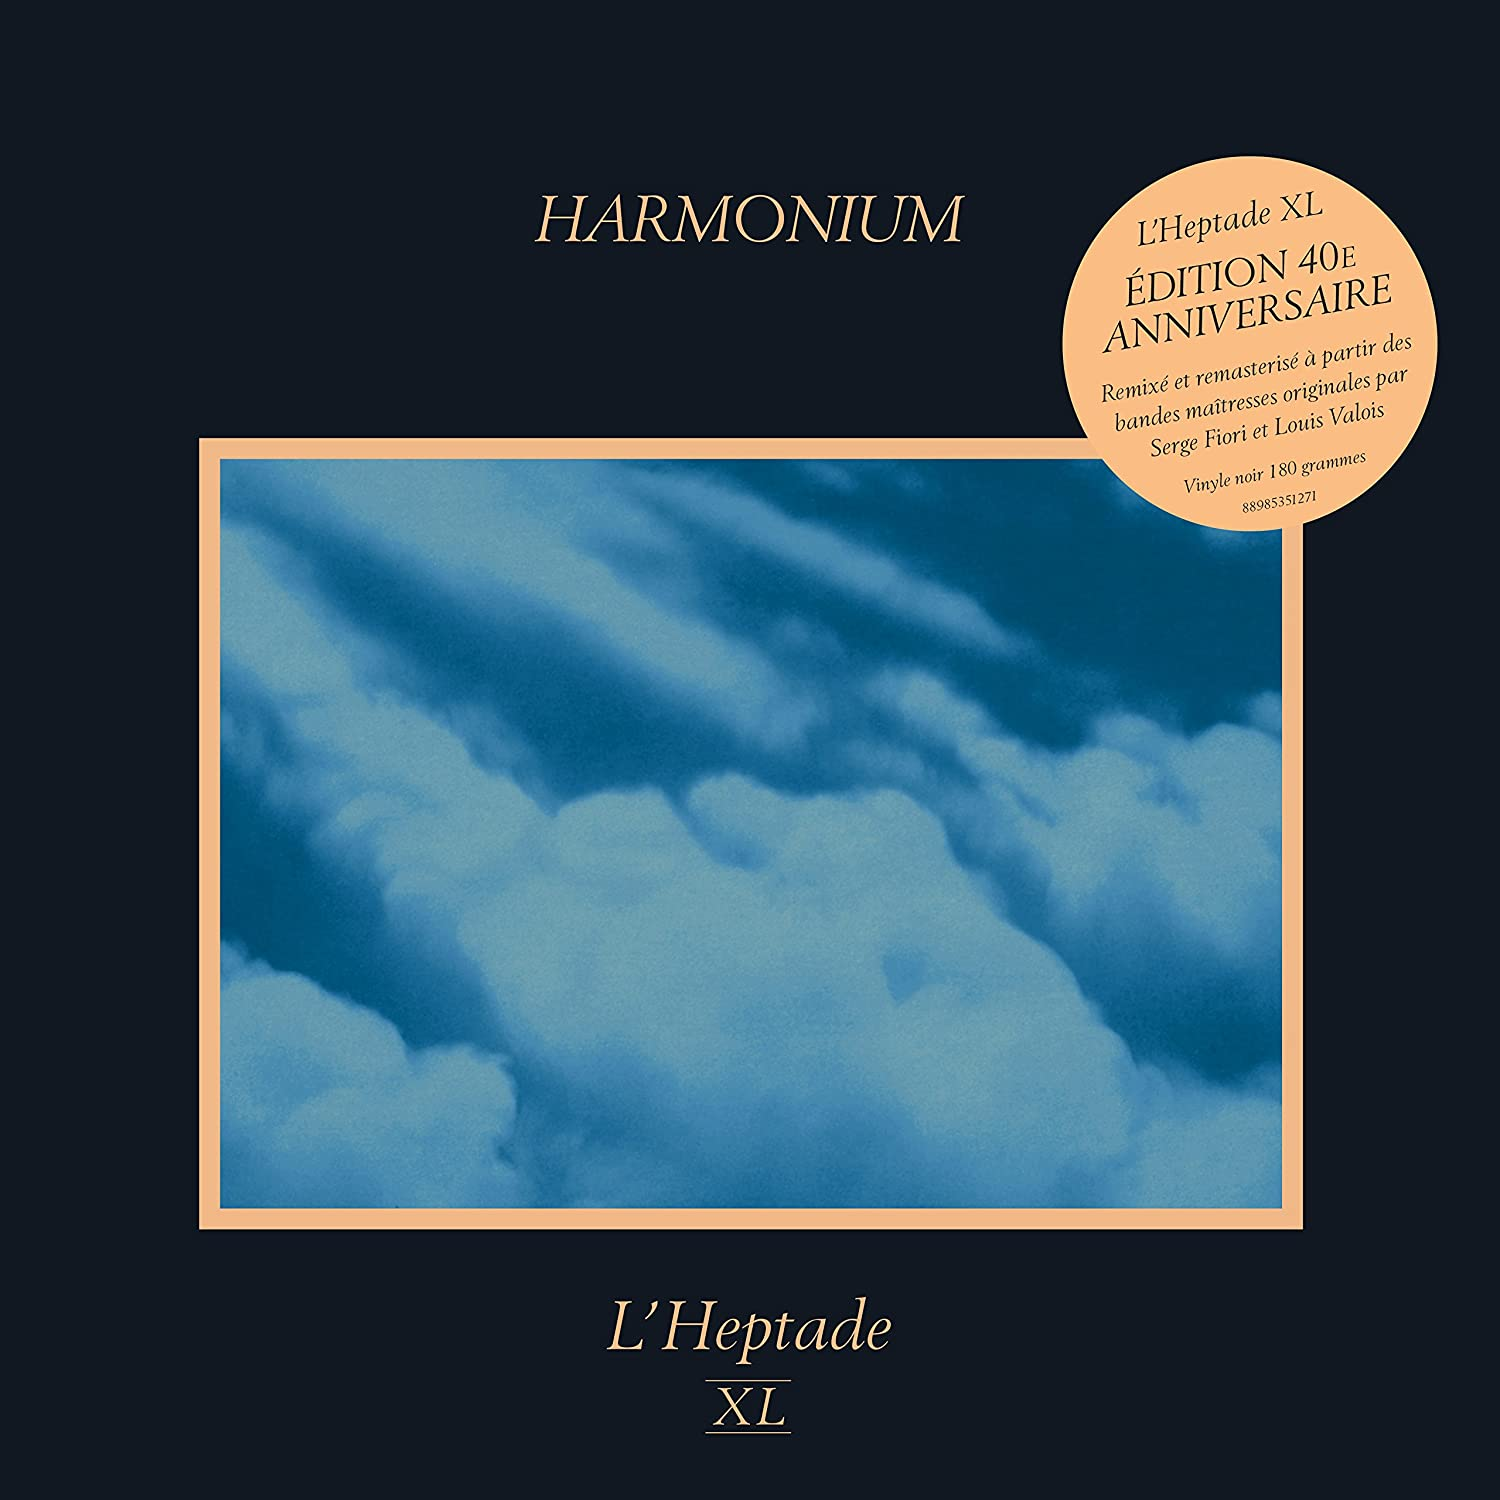 L'Heptade XL by Harmonium